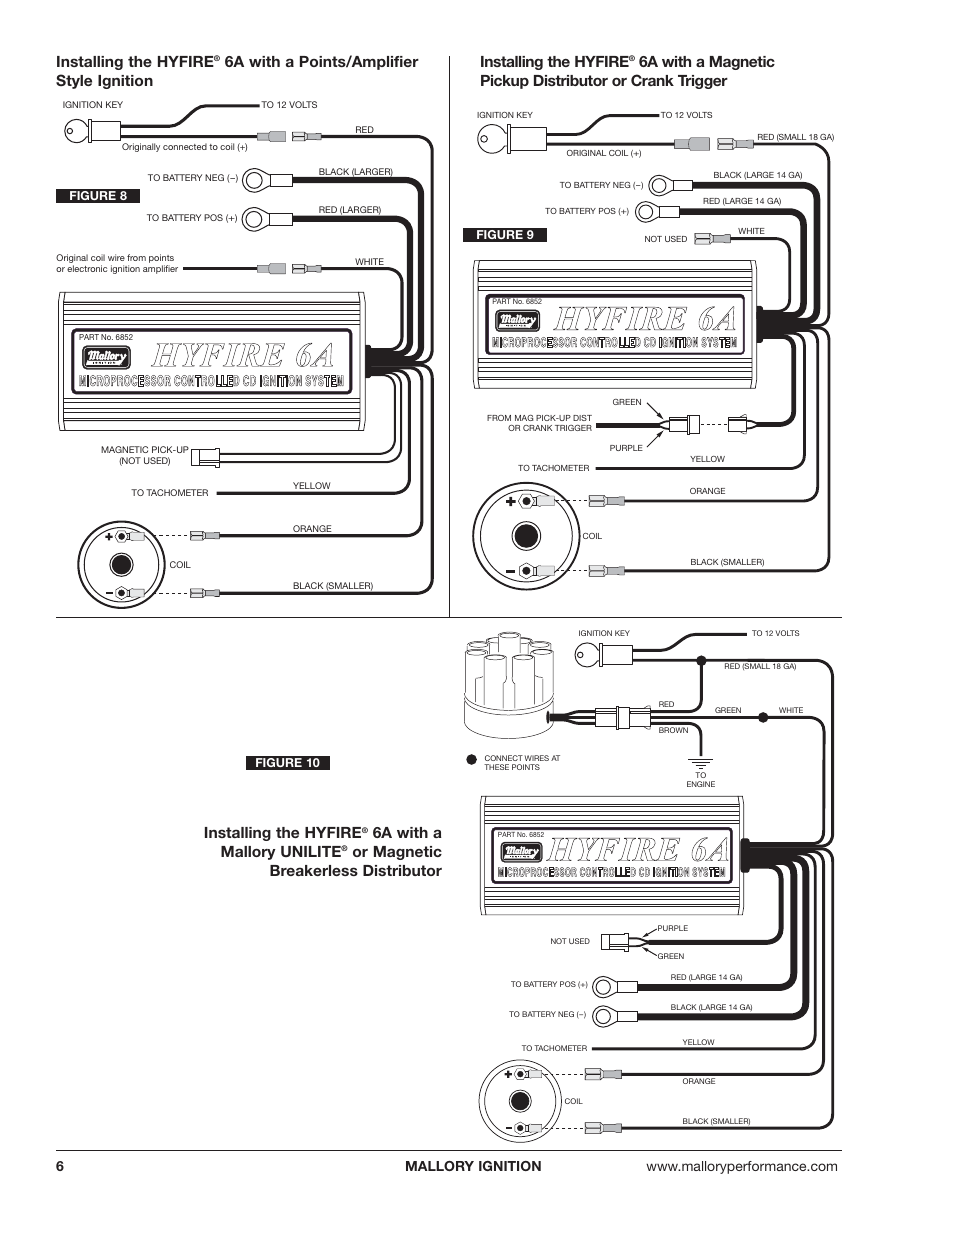 Mallory Ignition Hyfire Wiring Diagram - Wiring Diagram Options on mallory hyfire wiring diagram for 6, dynatek ignition wiring diagram, crane ignition wiring diagram, msd ignition wiring diagram, ford ignition wiring diagram, jacobs ignition wiring diagram, distributor ignition wiring diagram,